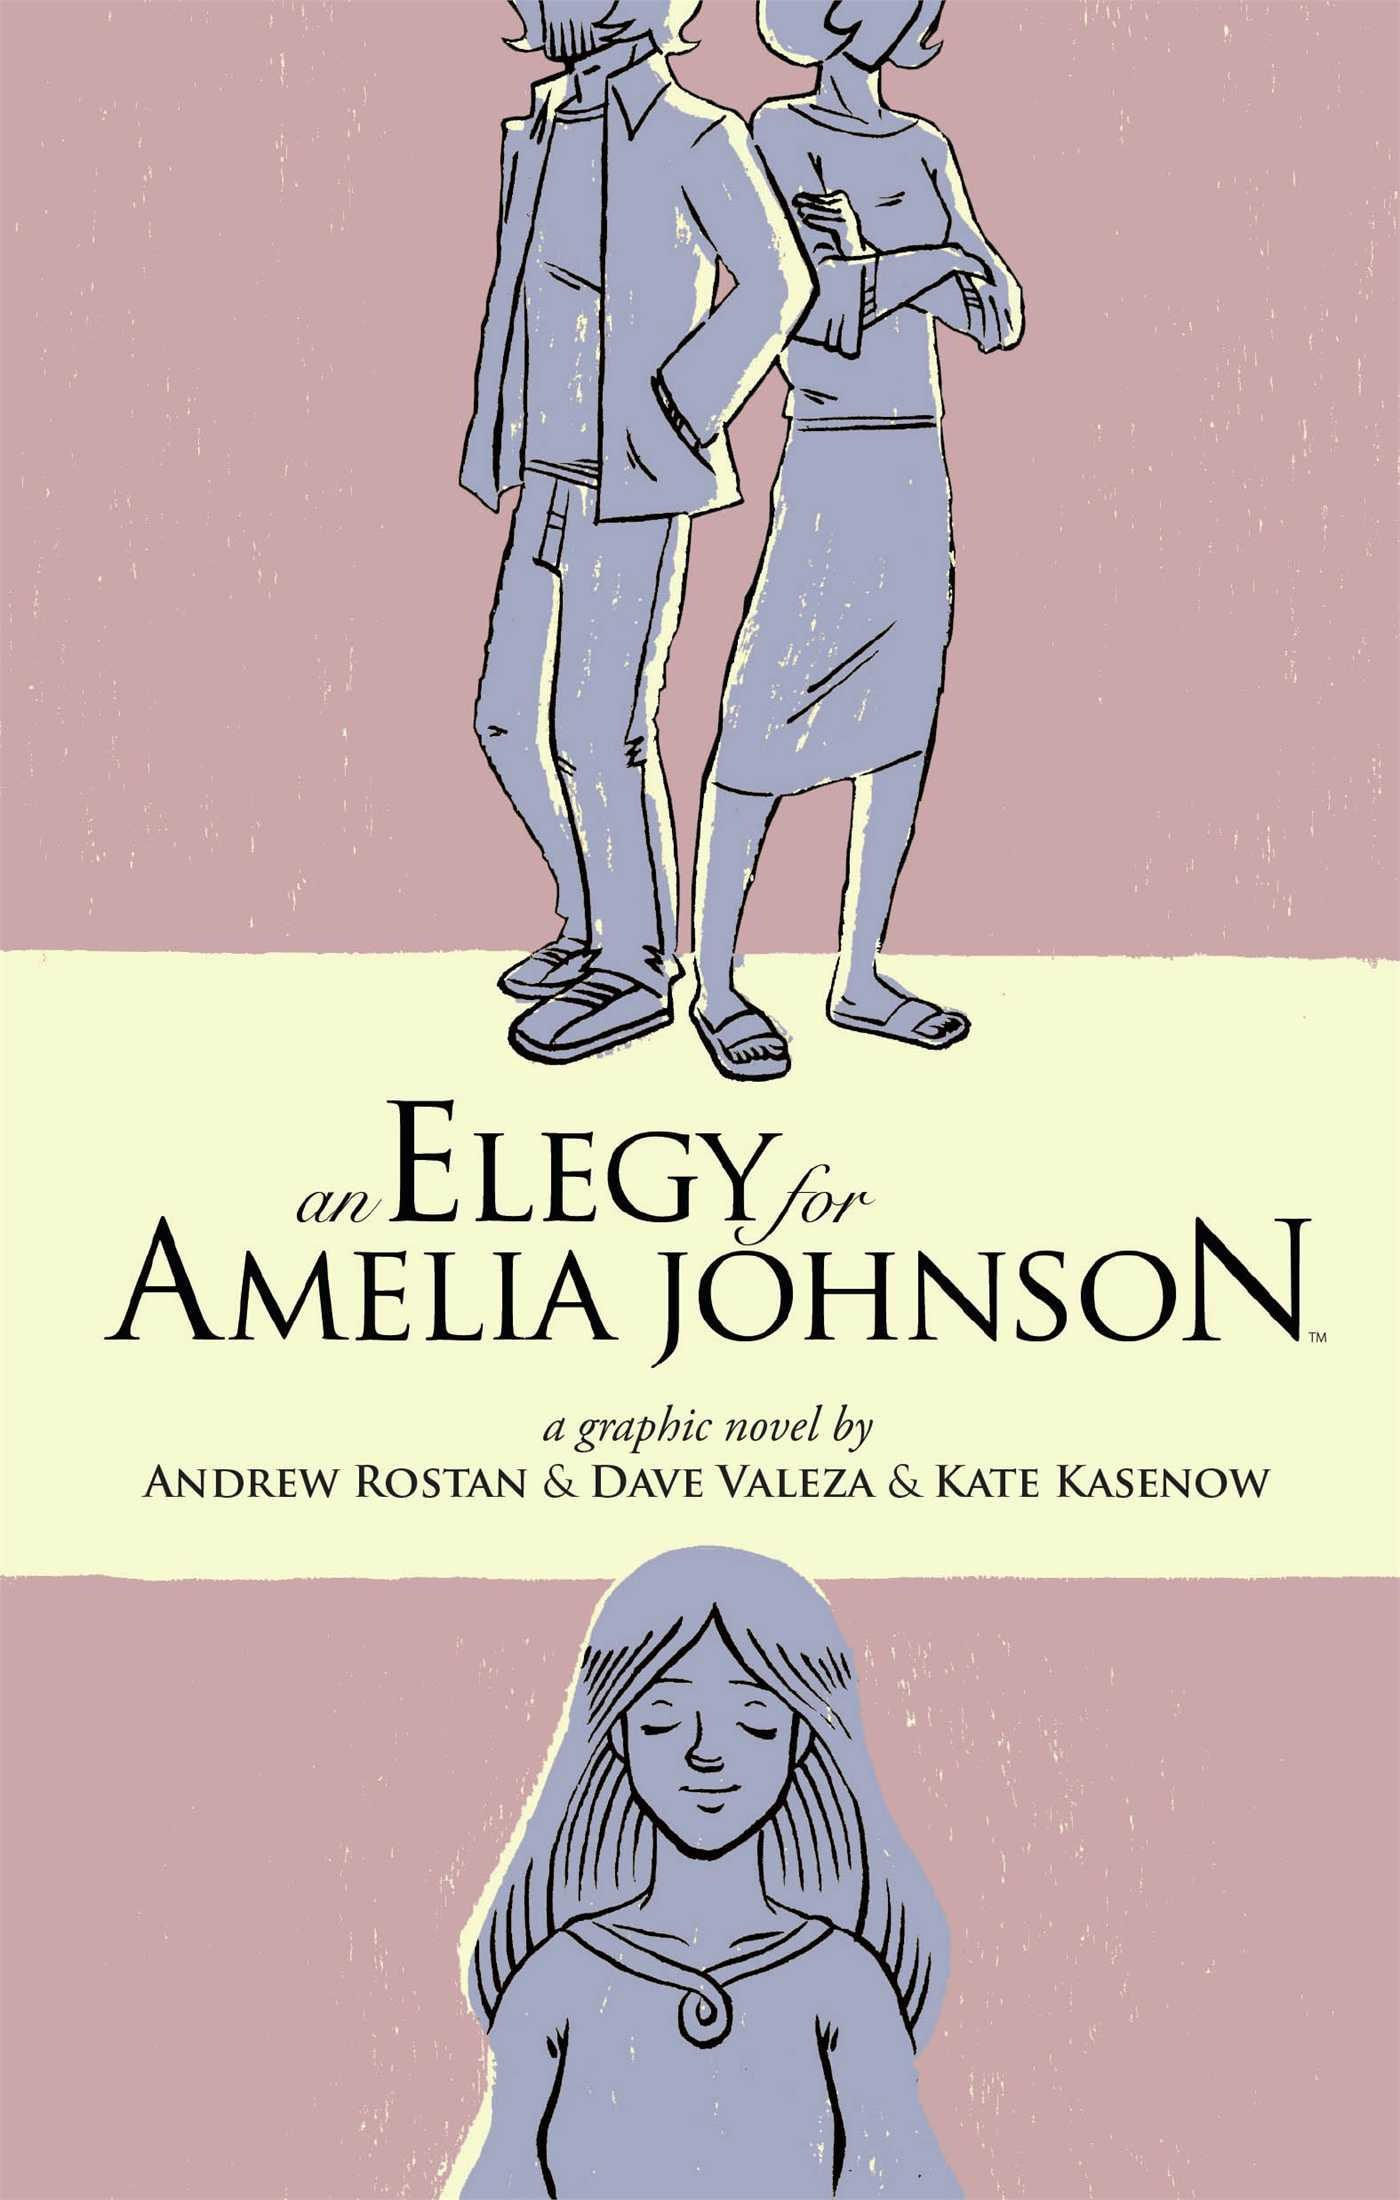 An-elegy-for-amelia-johnson-9781932386837_hr